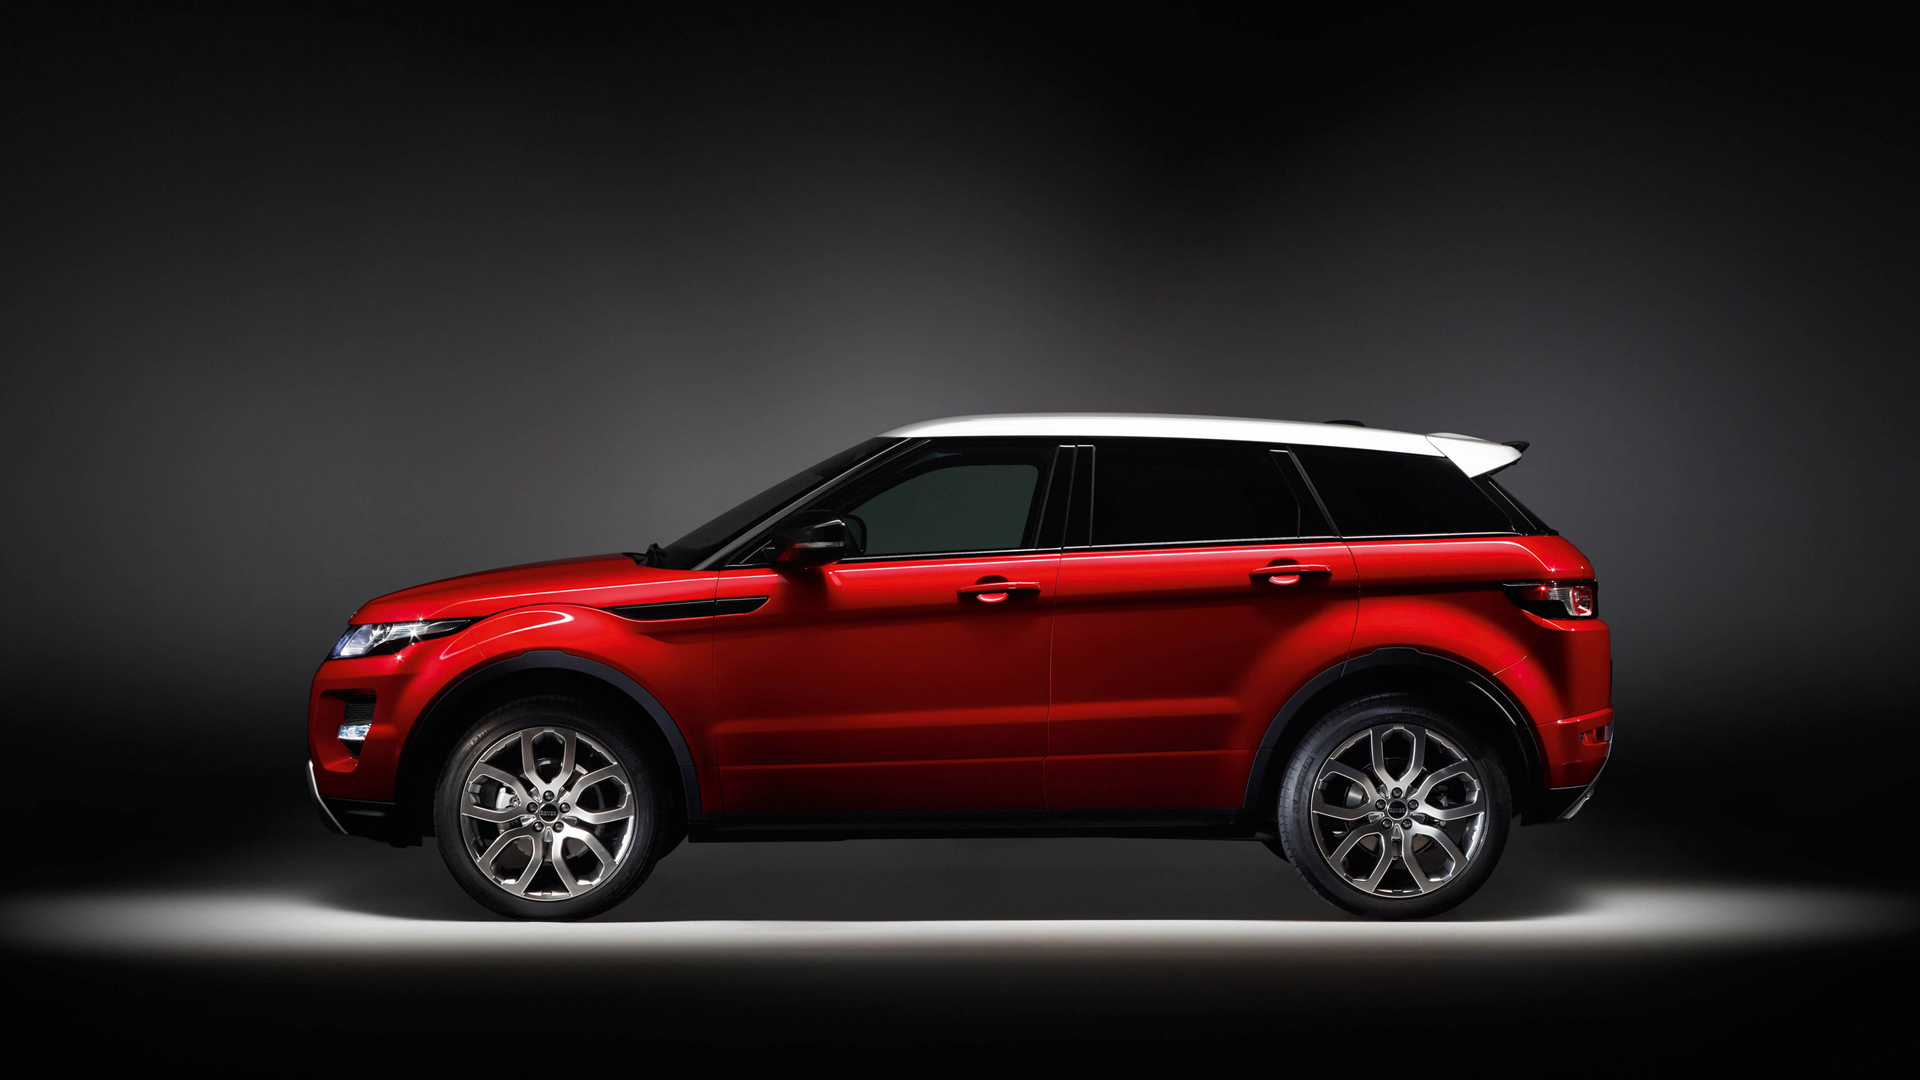 Fantastic Red Evoque Wallpaper